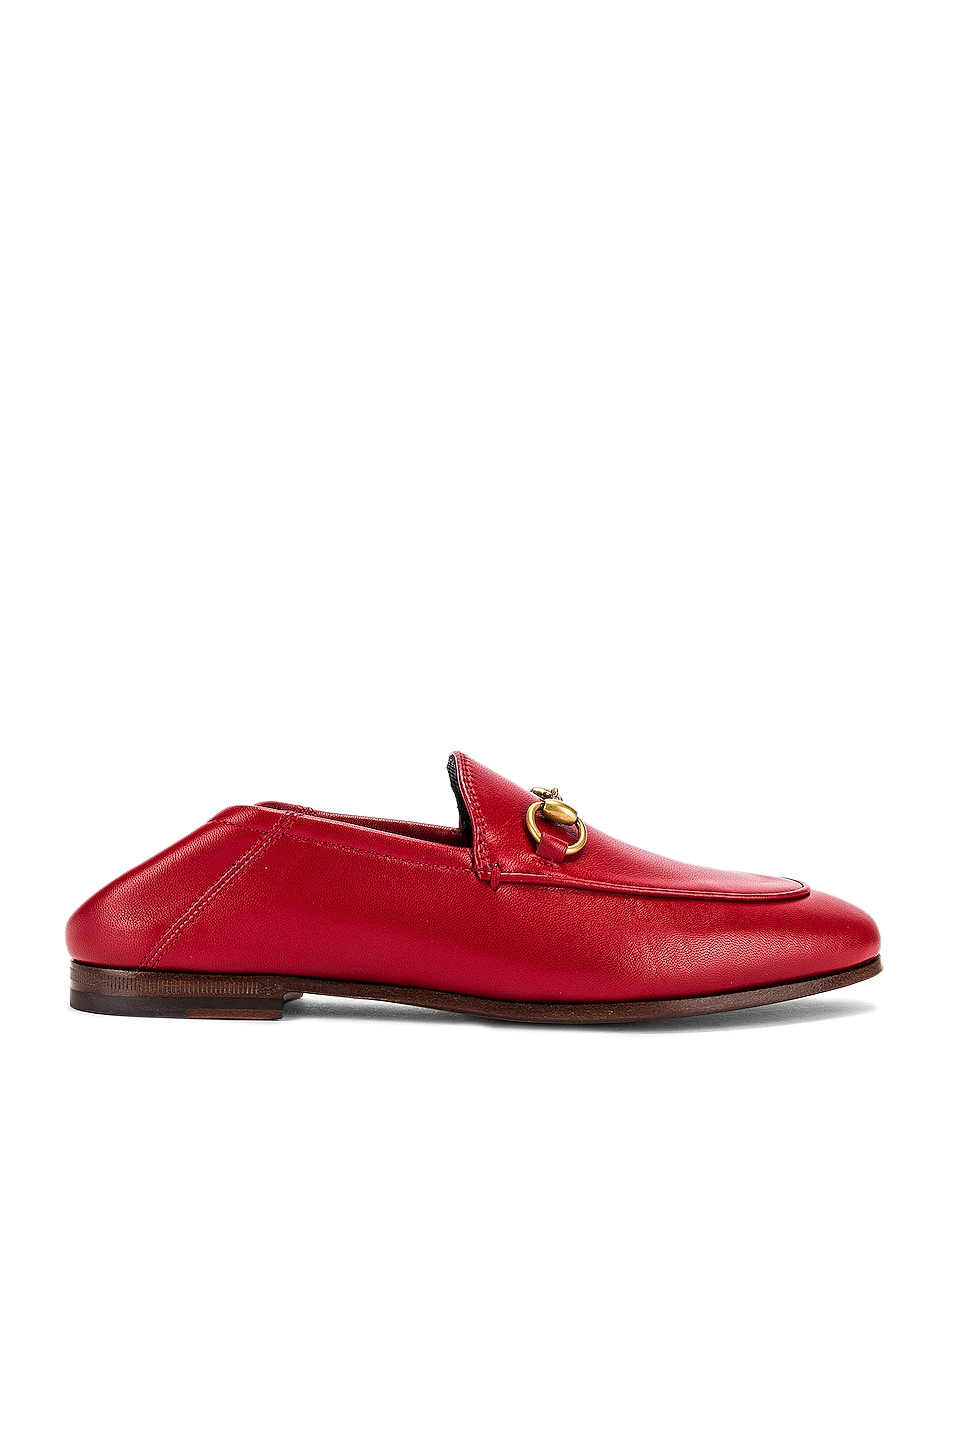 Image 1 of Gucci Leather Horsebit Loafers in Hibiscus Red